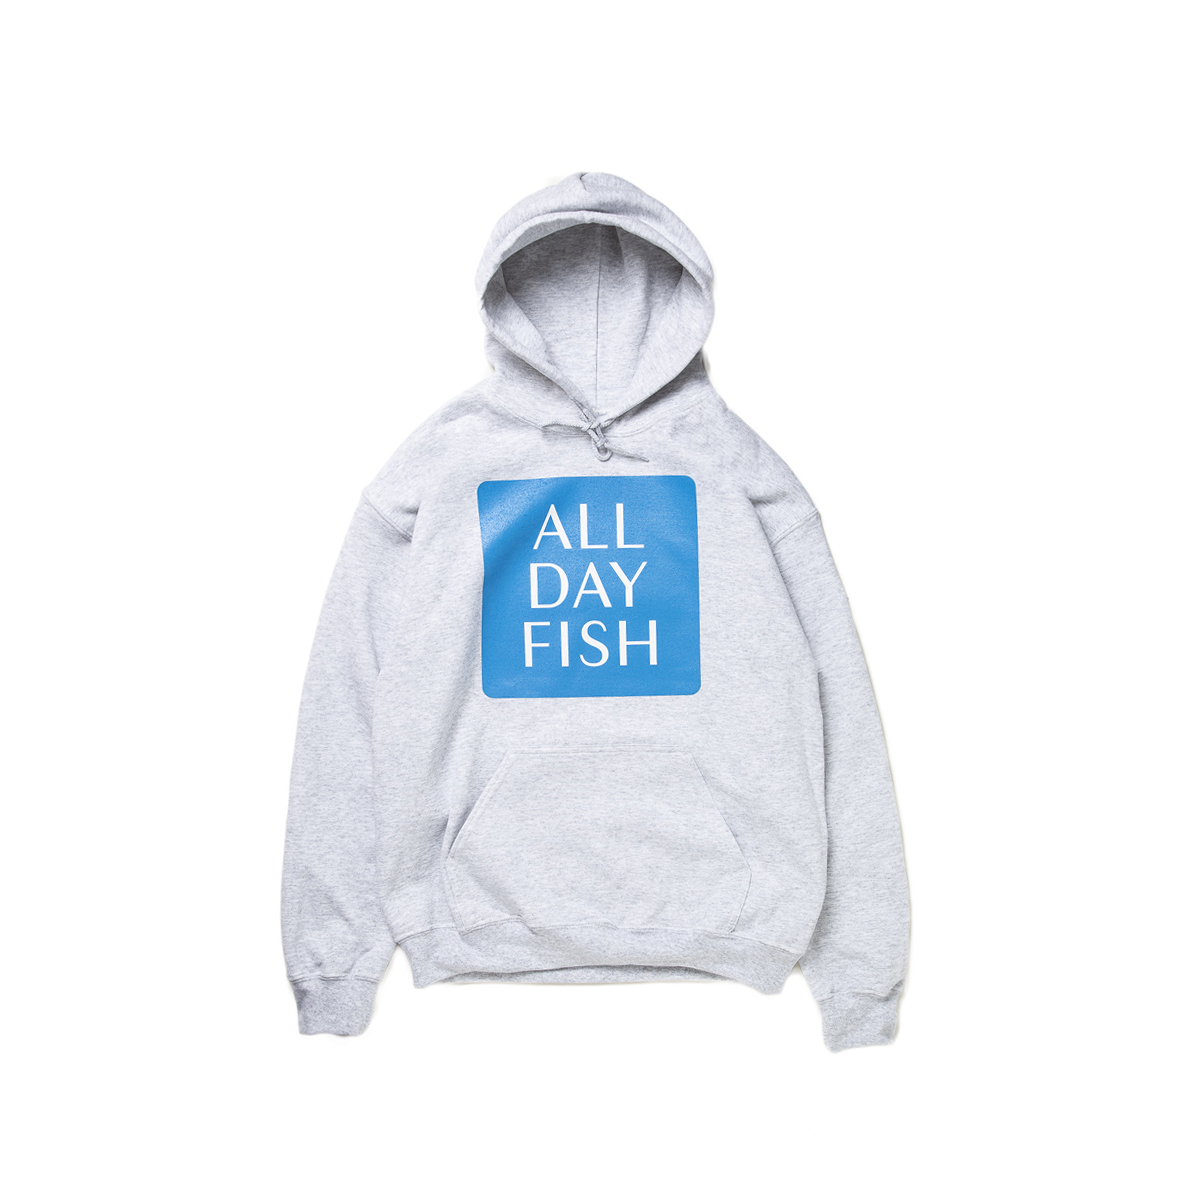 All Day Fish HOODY